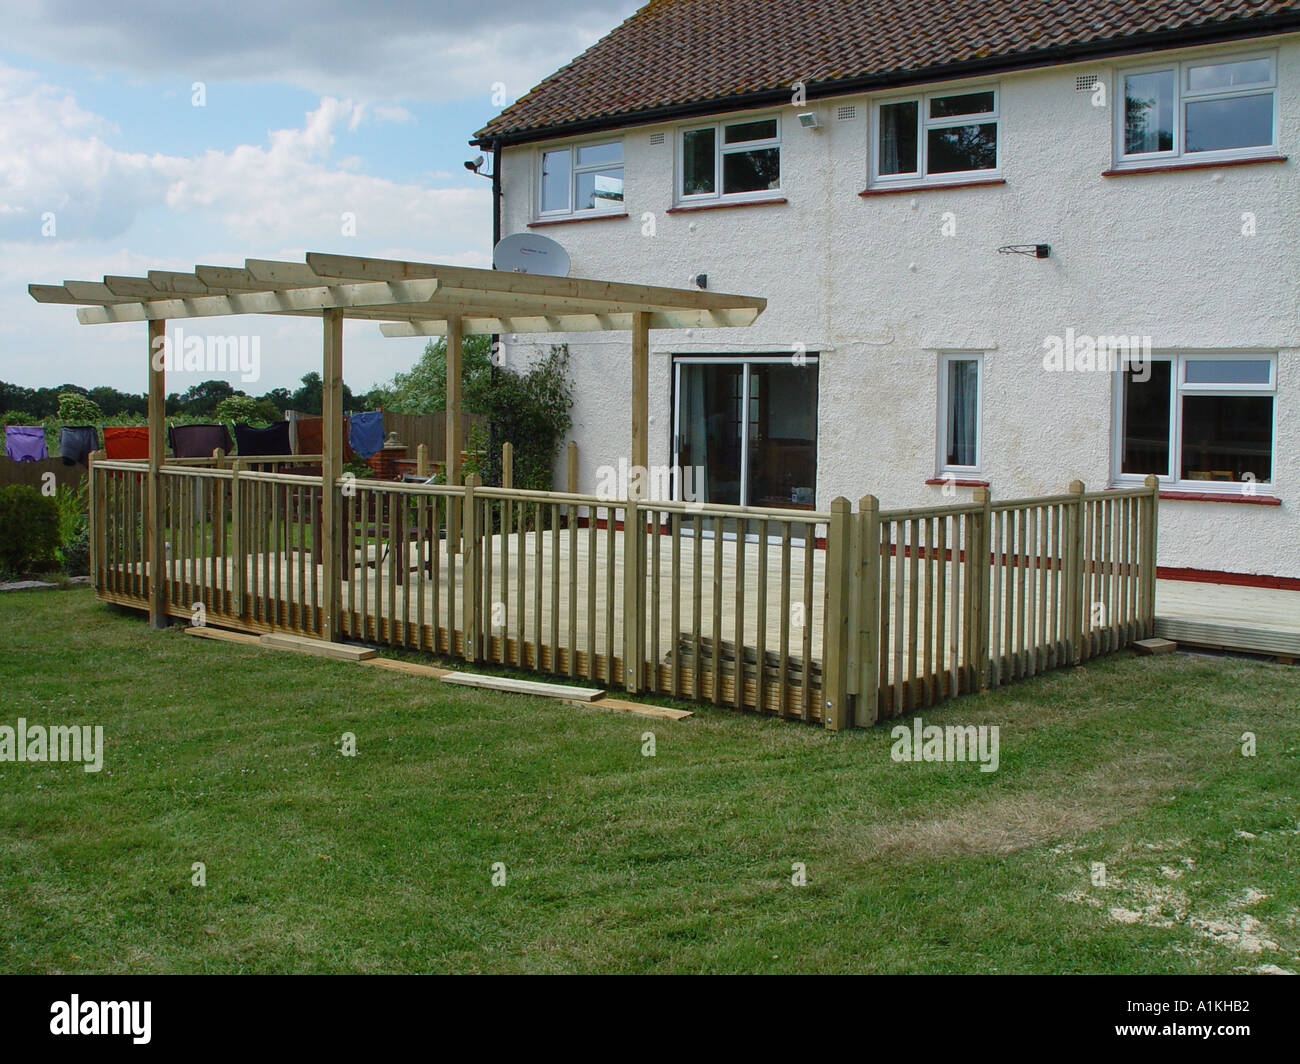 holz garten terrasse mit balustraden und pergola stockfoto bild 3356081 alamy. Black Bedroom Furniture Sets. Home Design Ideas